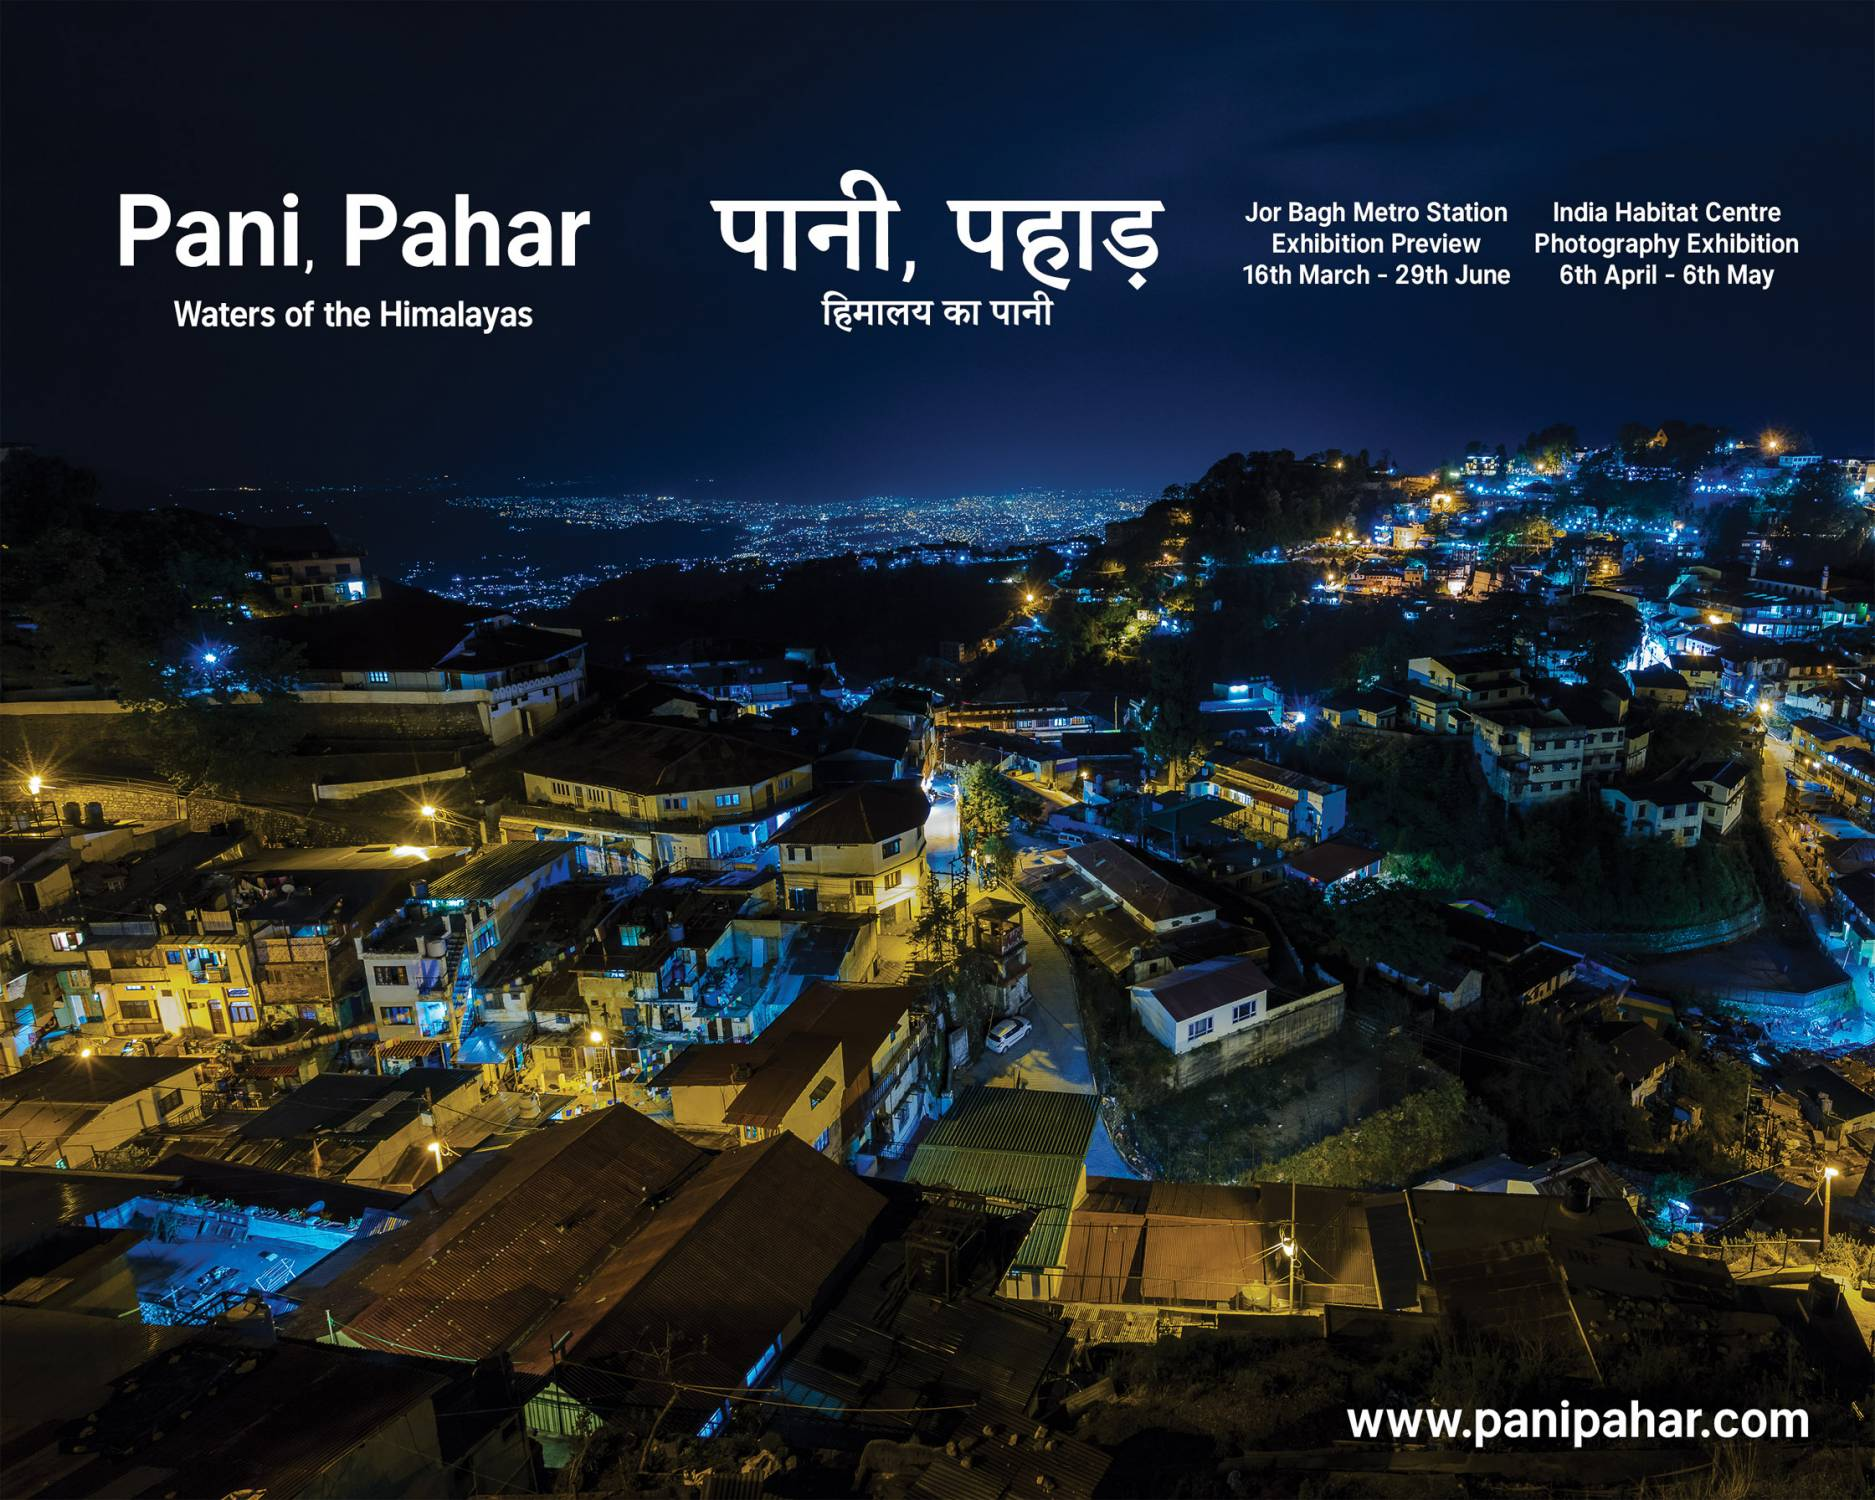 Pani Pahar exhibition in New Delhi